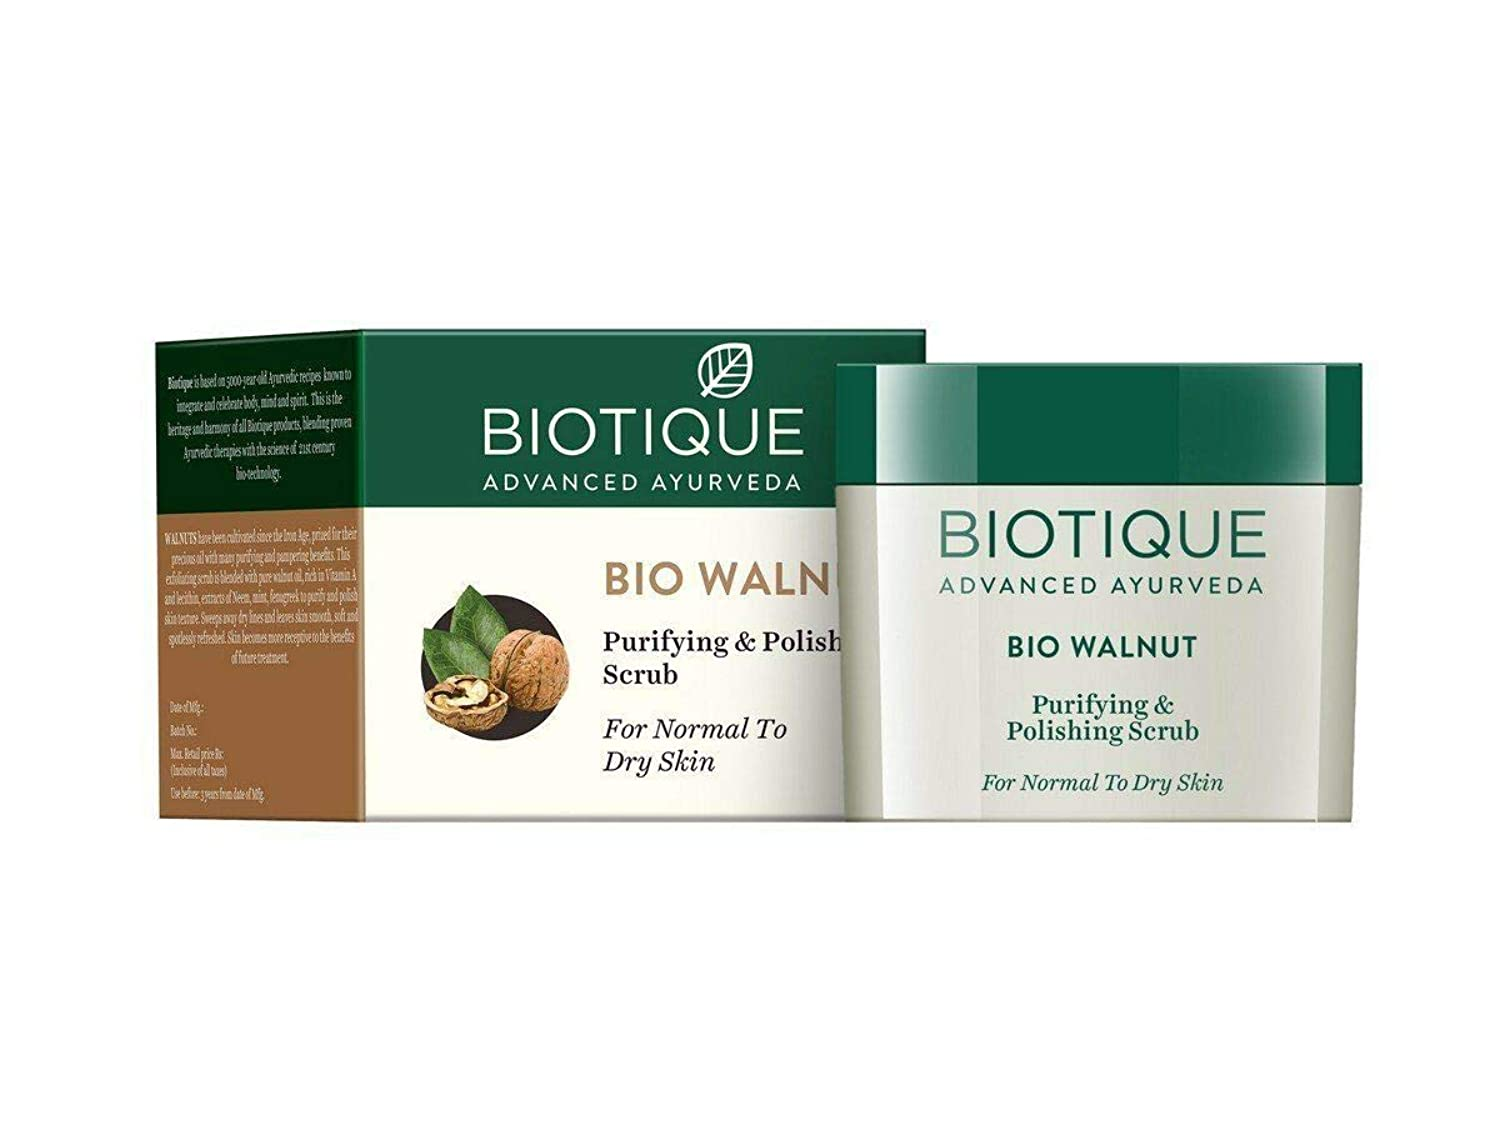 Biotique Bio Walnut Purifying & Polishing Scrub, 50g get rid of the dead cells